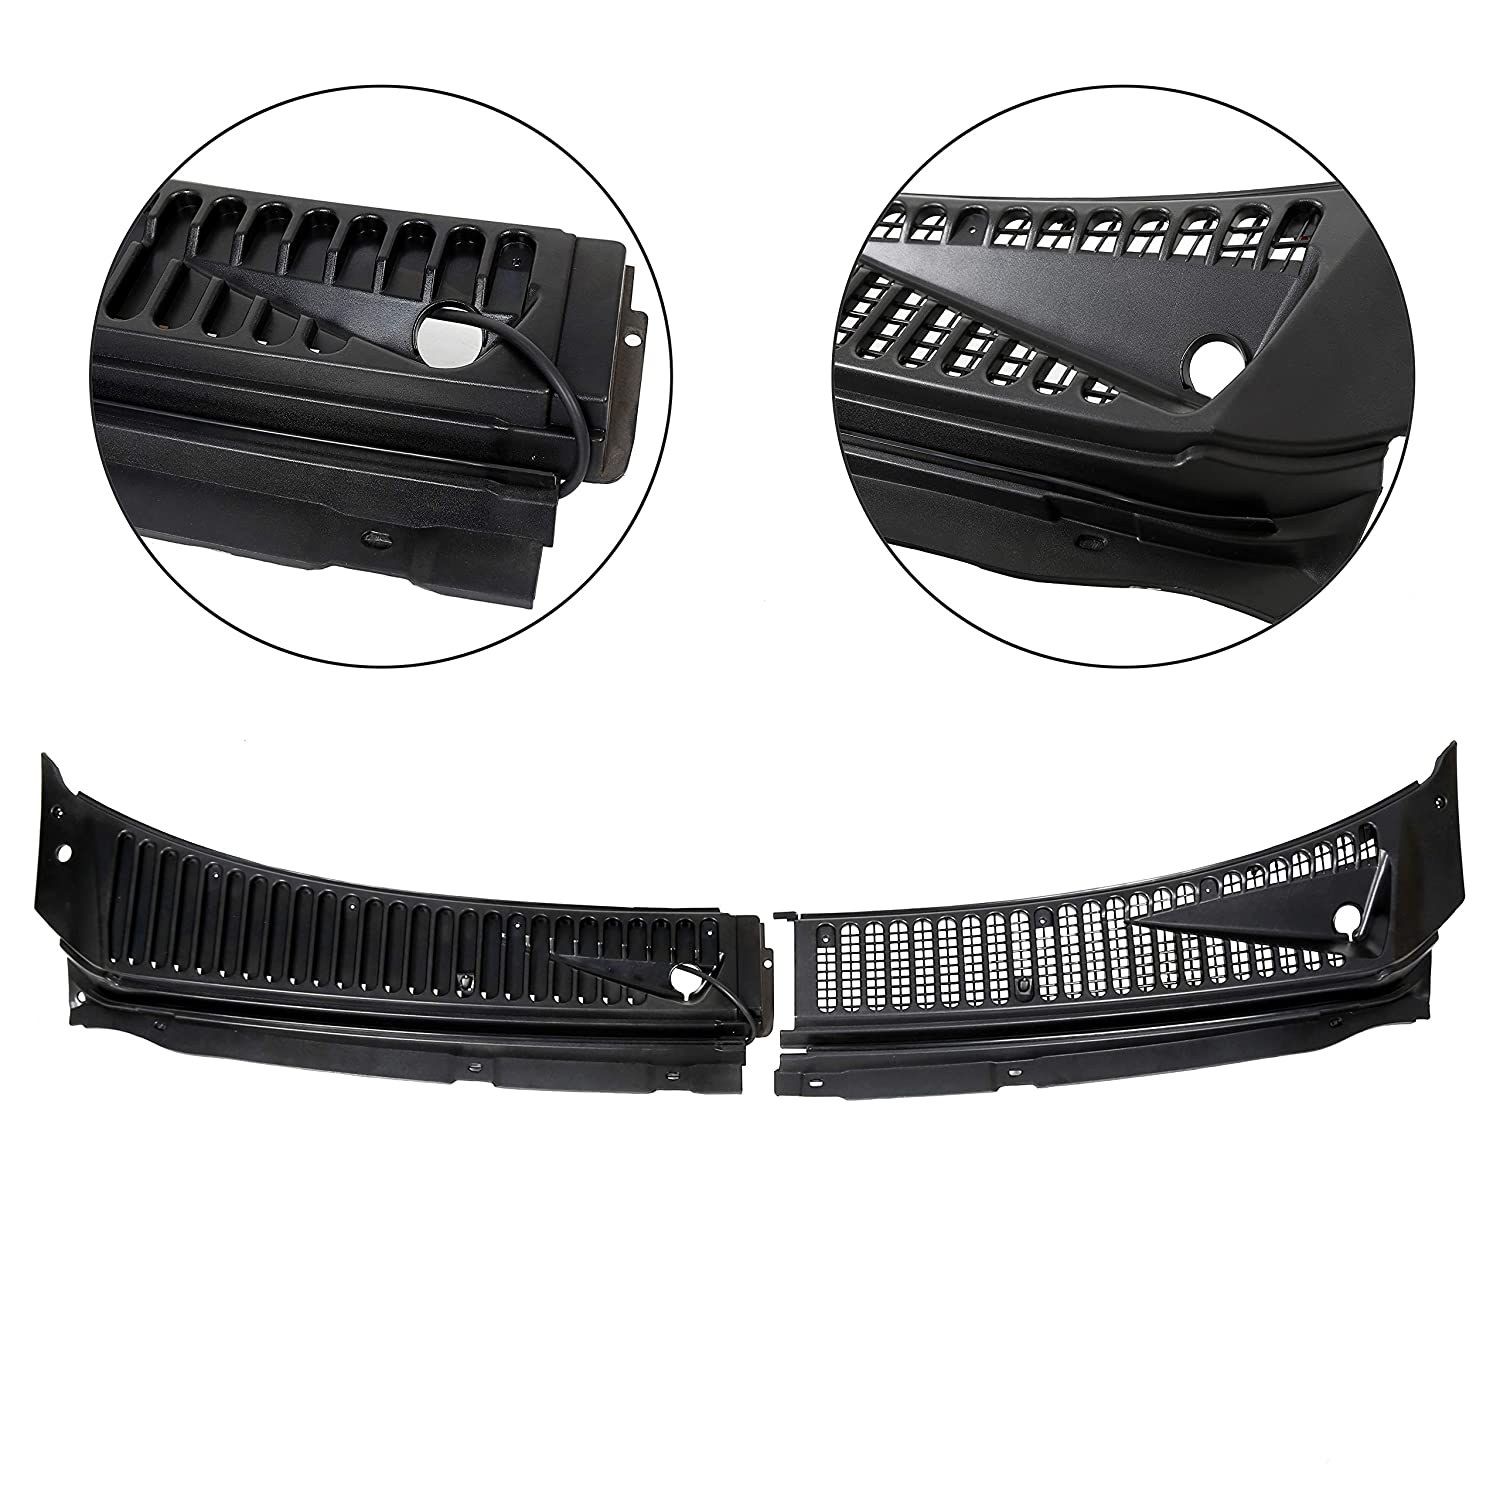 Drive/& Passenger Side JMTAAT Windshield Wiper Cowl Vent Grille Cover Panels for 99-07 Ford F250 F350 2 Pcs